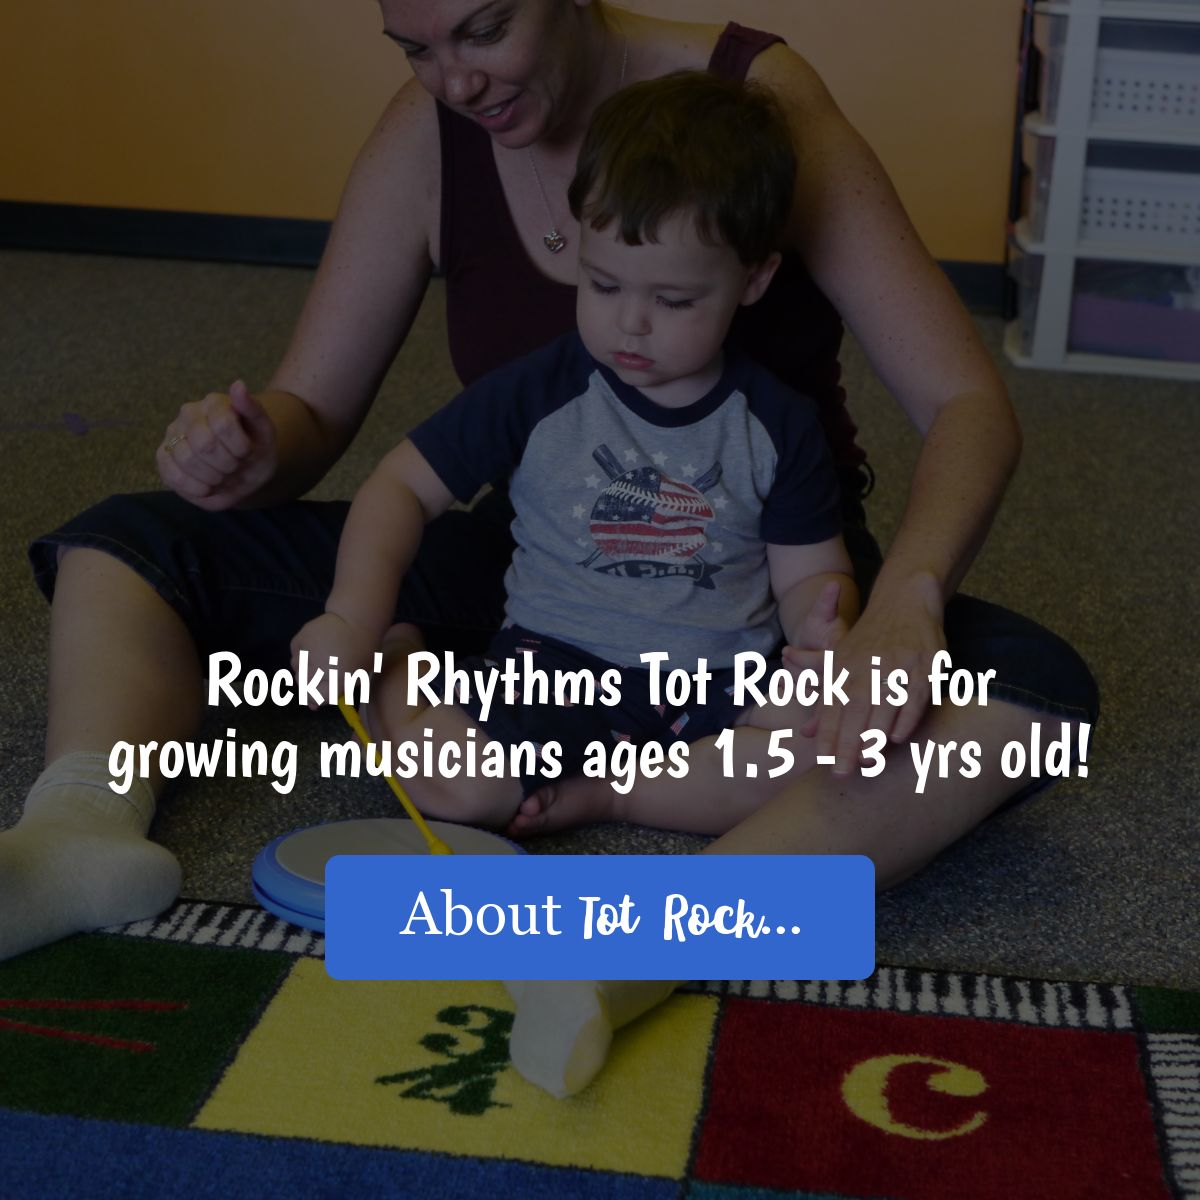 Rockin' Rhythms Tot Rock is for growing musicians from 1.5 - 3 years old. About Tot Rock...